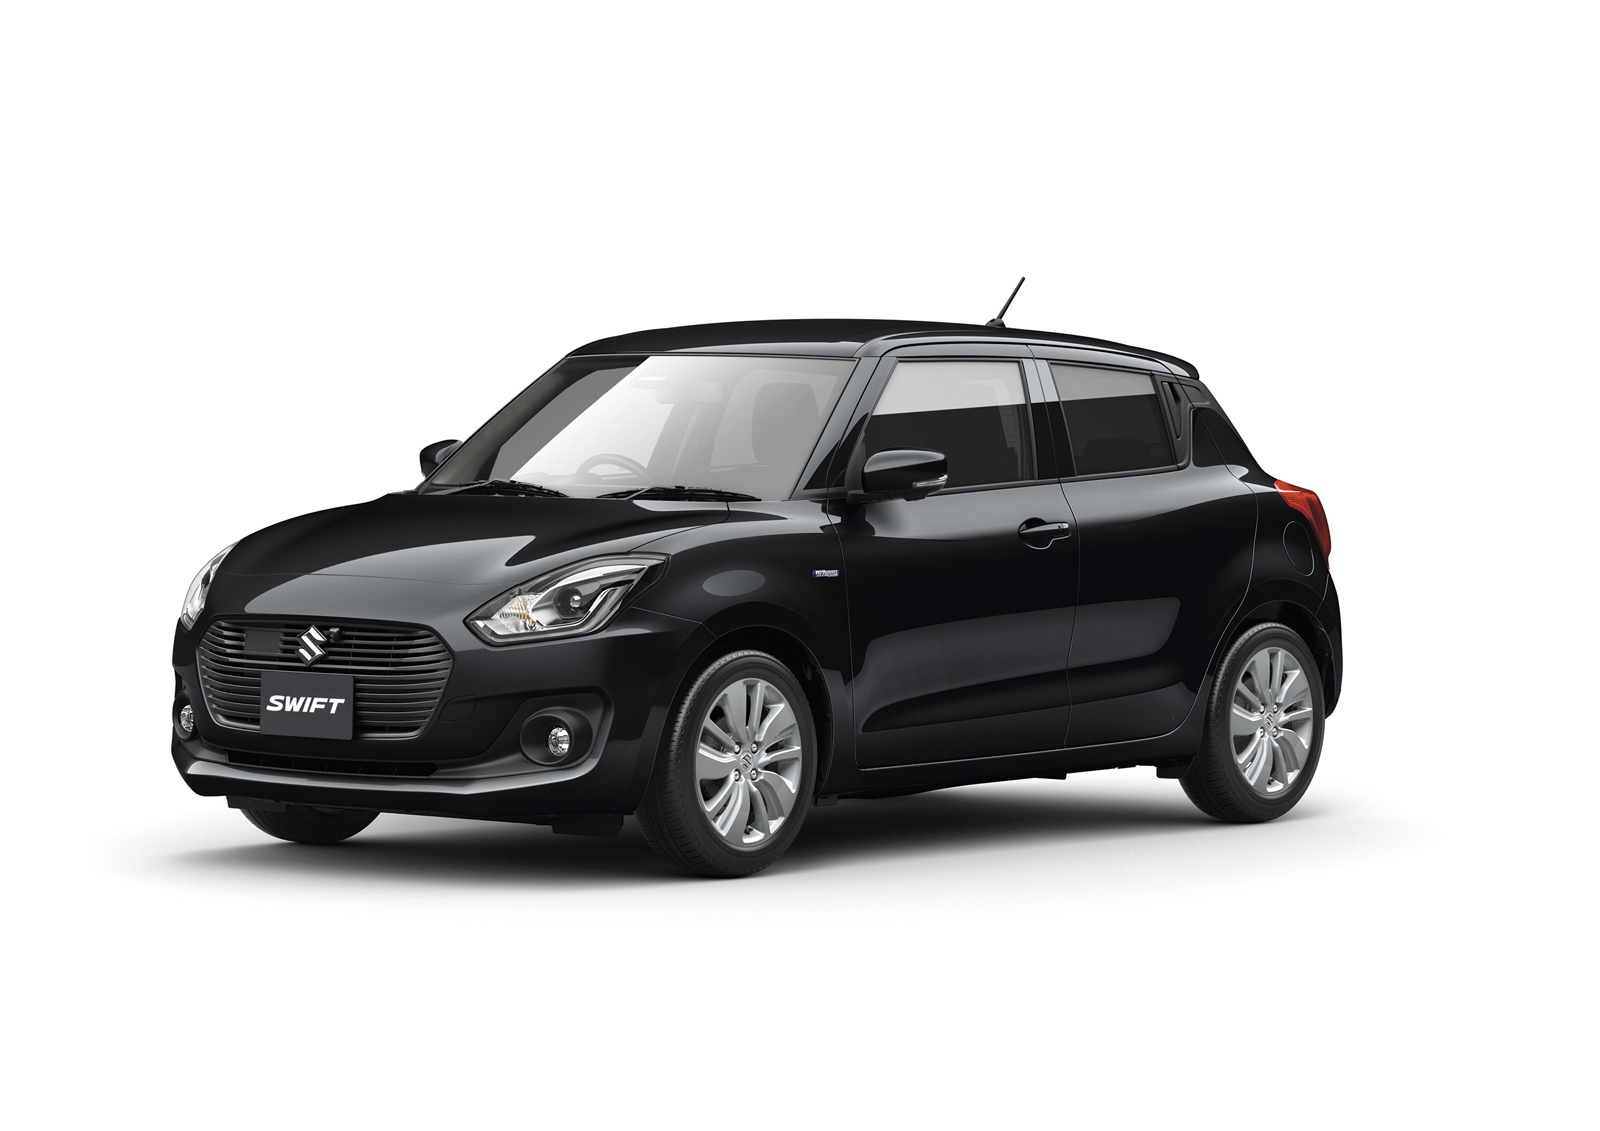 Suzuki Swift 2017 (7)